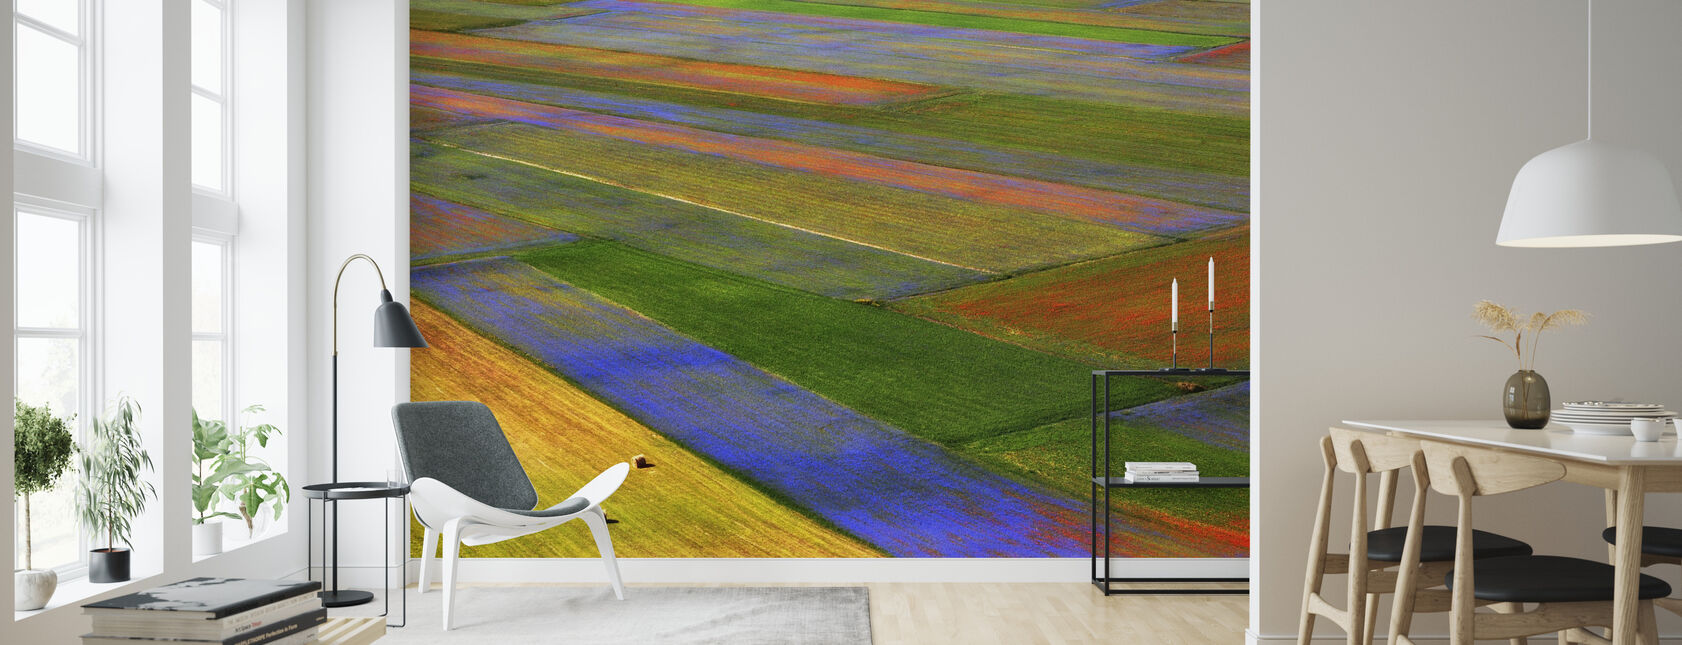 Colorful Field - Wallpaper - Living Room